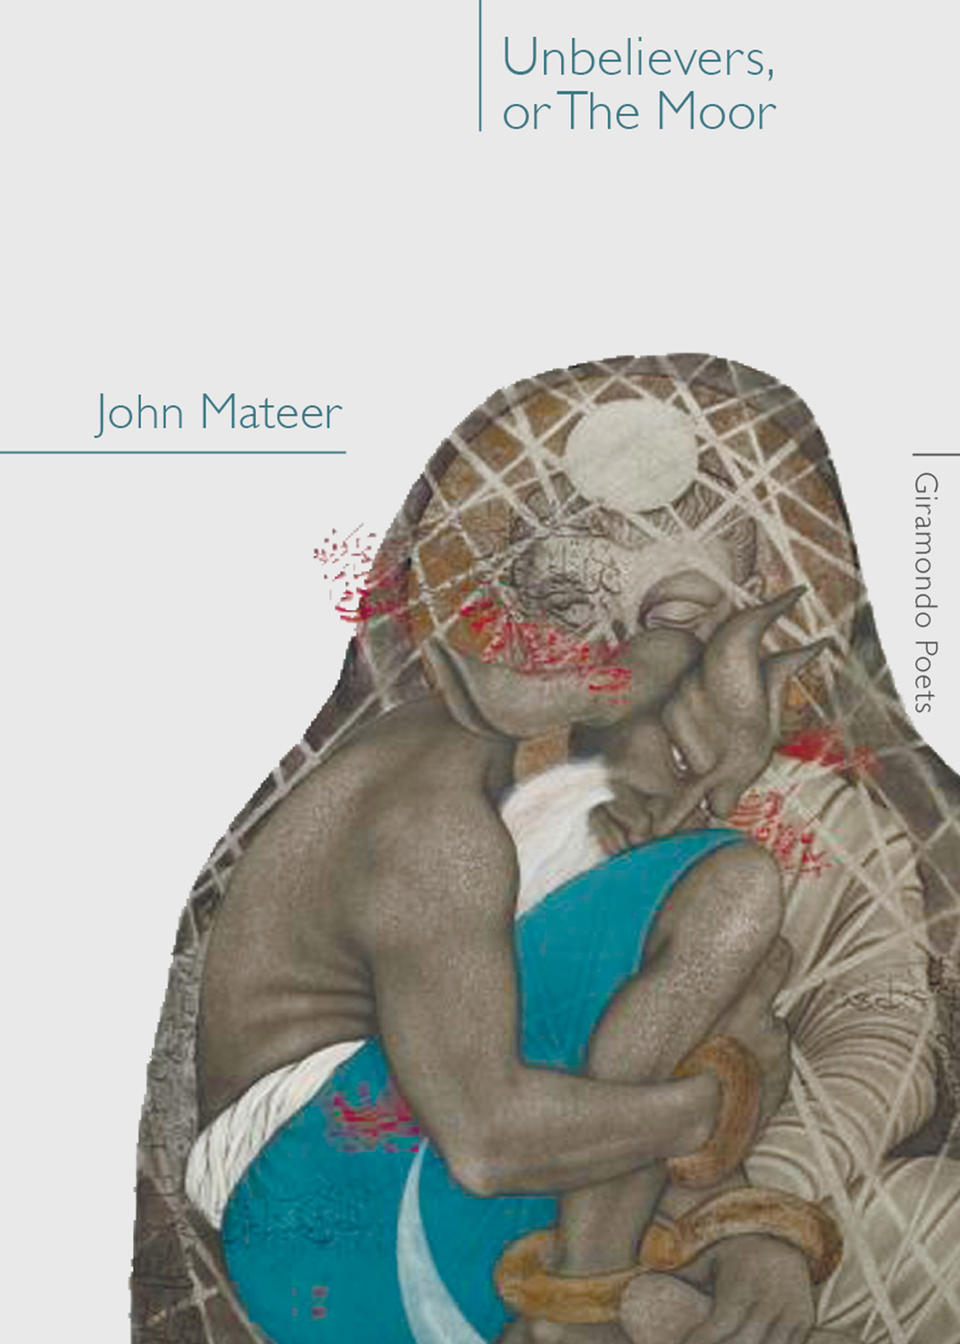 Unbelievers-or-The-Moor-John-Mateer